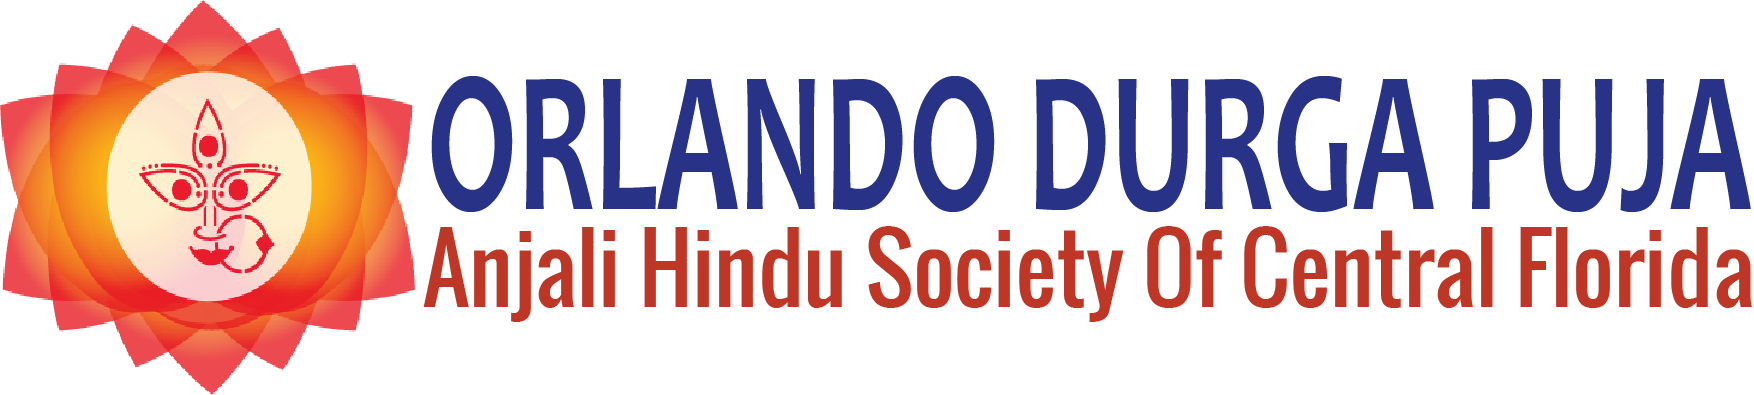 Orlando Durga Puja - Anjali Hindu Society of Central Florida